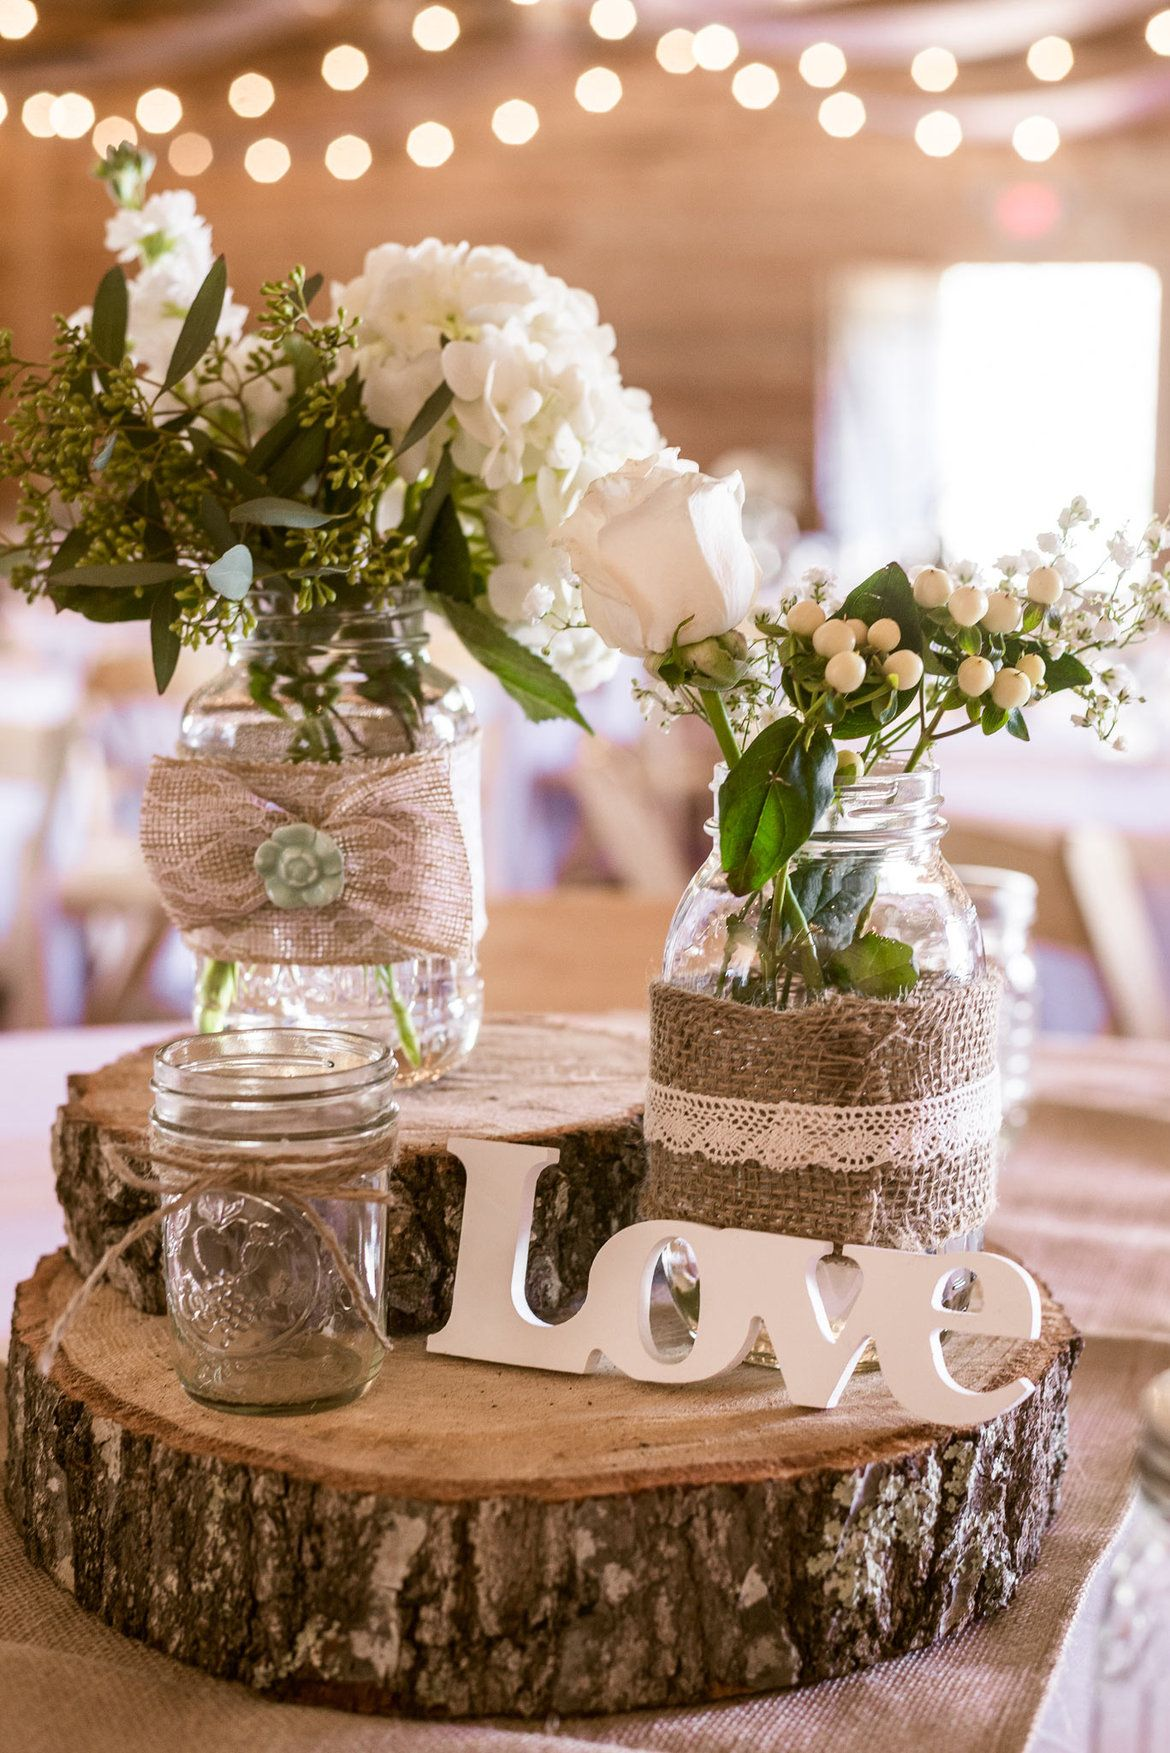 Mason Jar Table Decor Steal These Budgetfriendly Ideas From Celebrity Weddings  Rustic